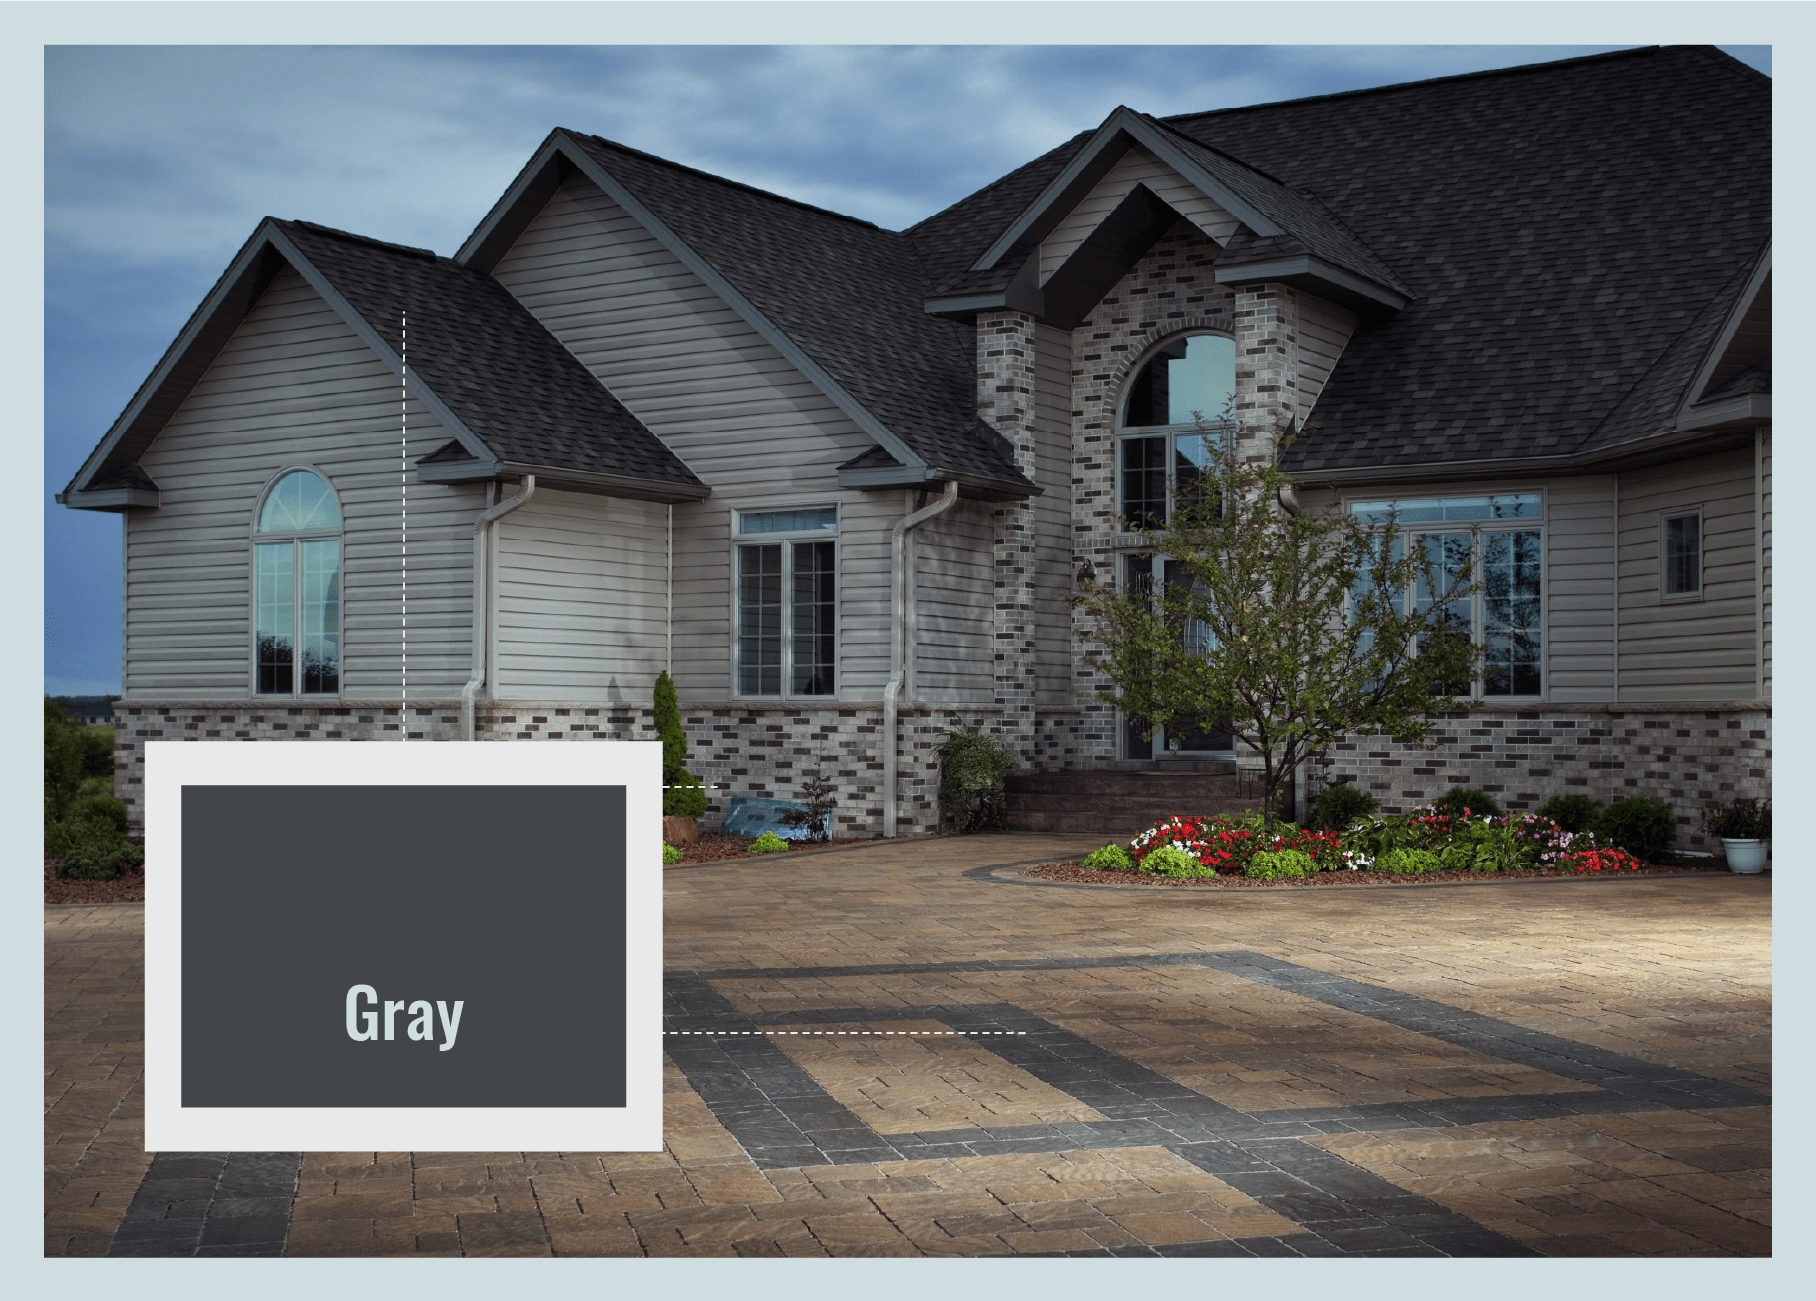 gray accent pavers matched with roof